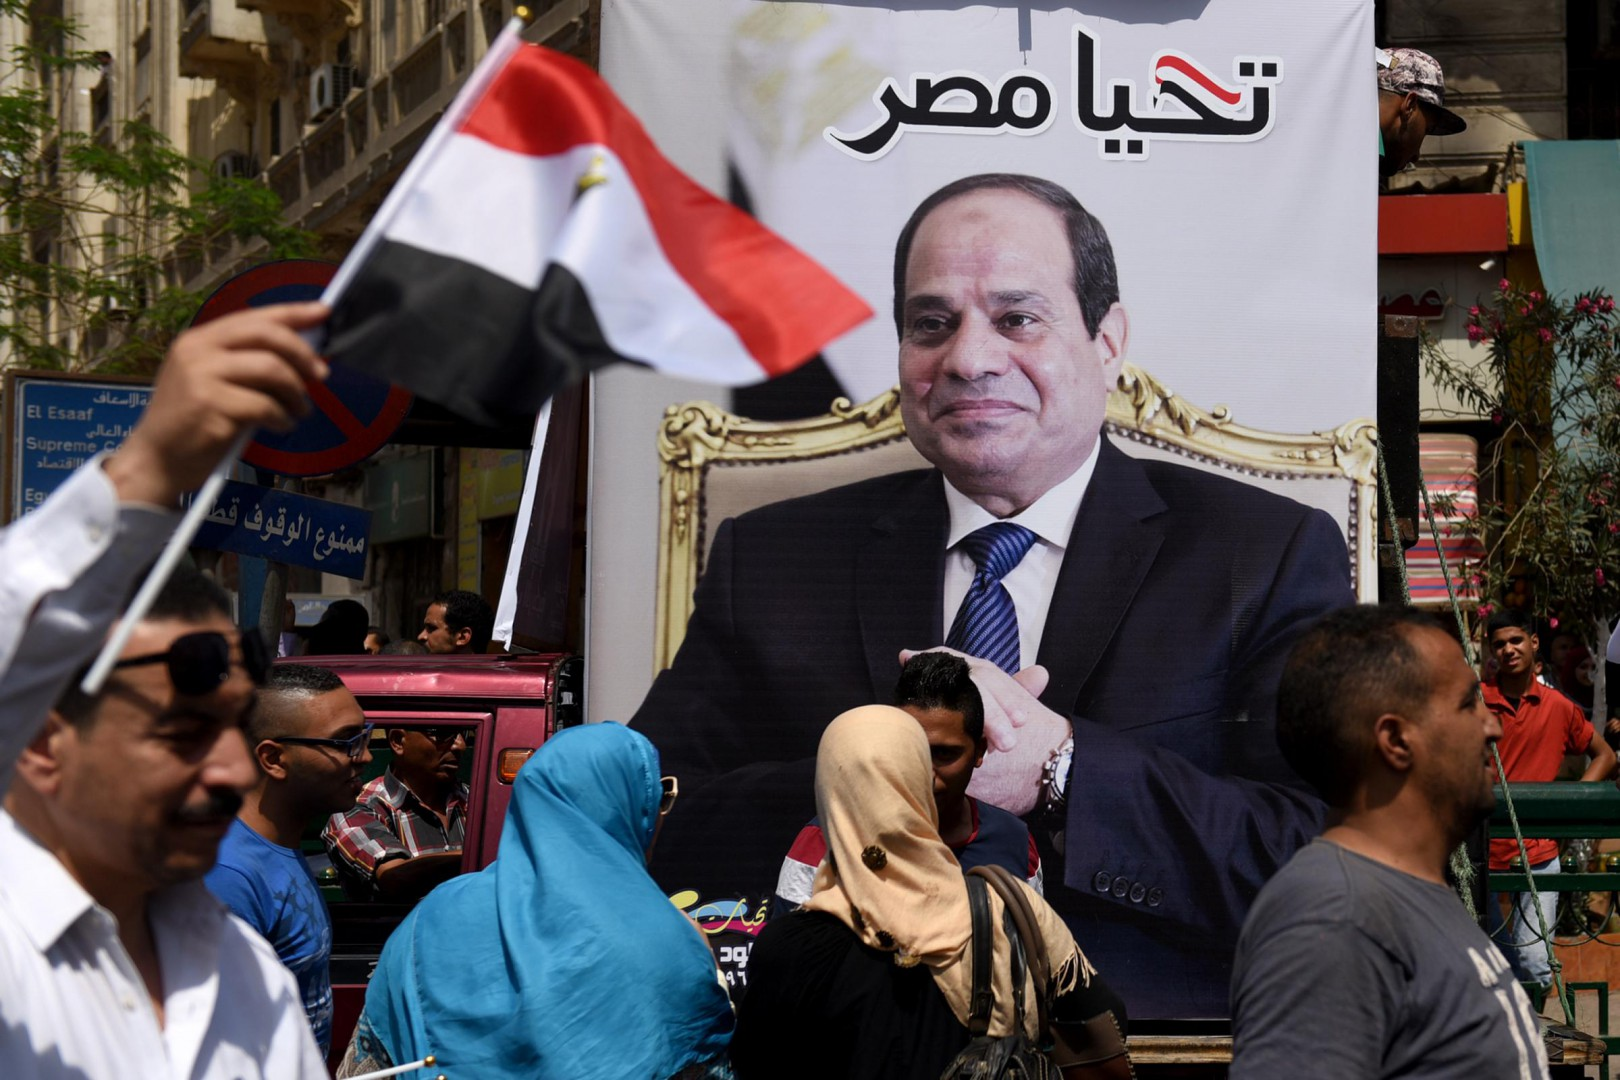 (160425) -- CAIRO, April 25, 2016 (Xinhua) -- Supporters of Egypt's army and Egyptian President Abdel Fattah al-Sisi gather near the Tahrir Square as a way to celebrate the 34th Sinai Liberation Day in Cairo, Egypt on April 25, 2016. (Xinhua/Zhao Dingzhe)